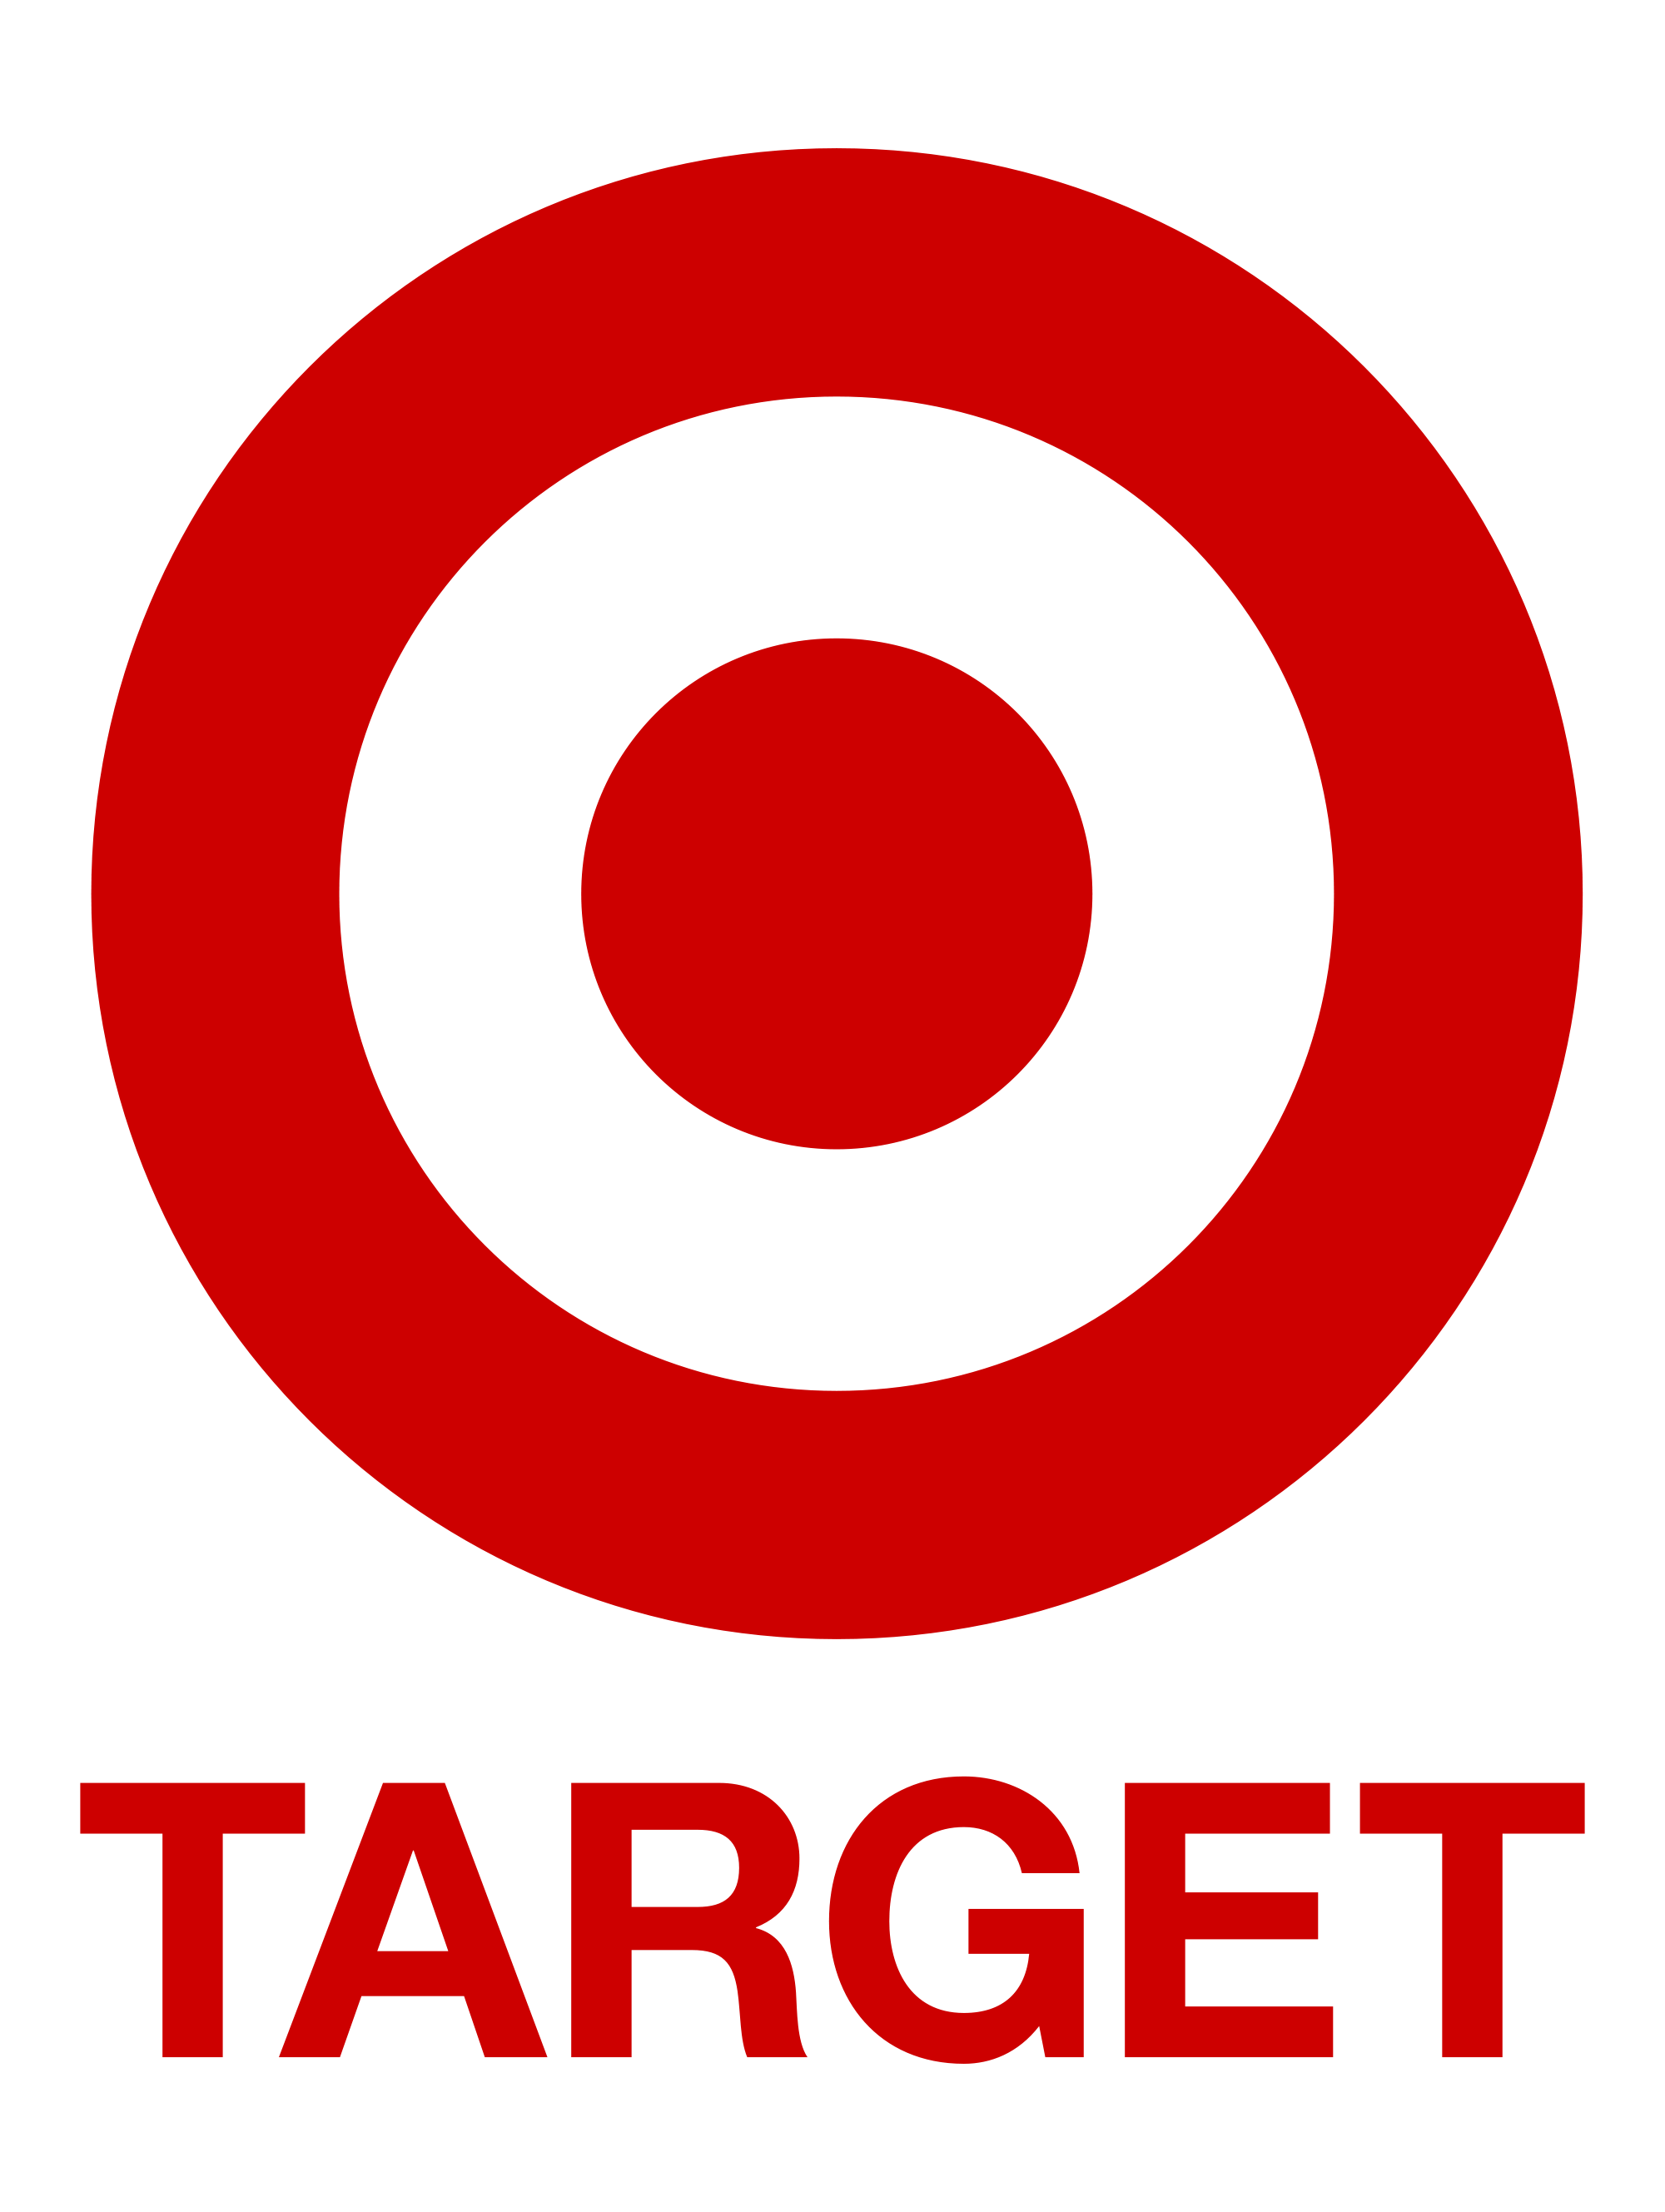 Free coupon png. Target select household essentials